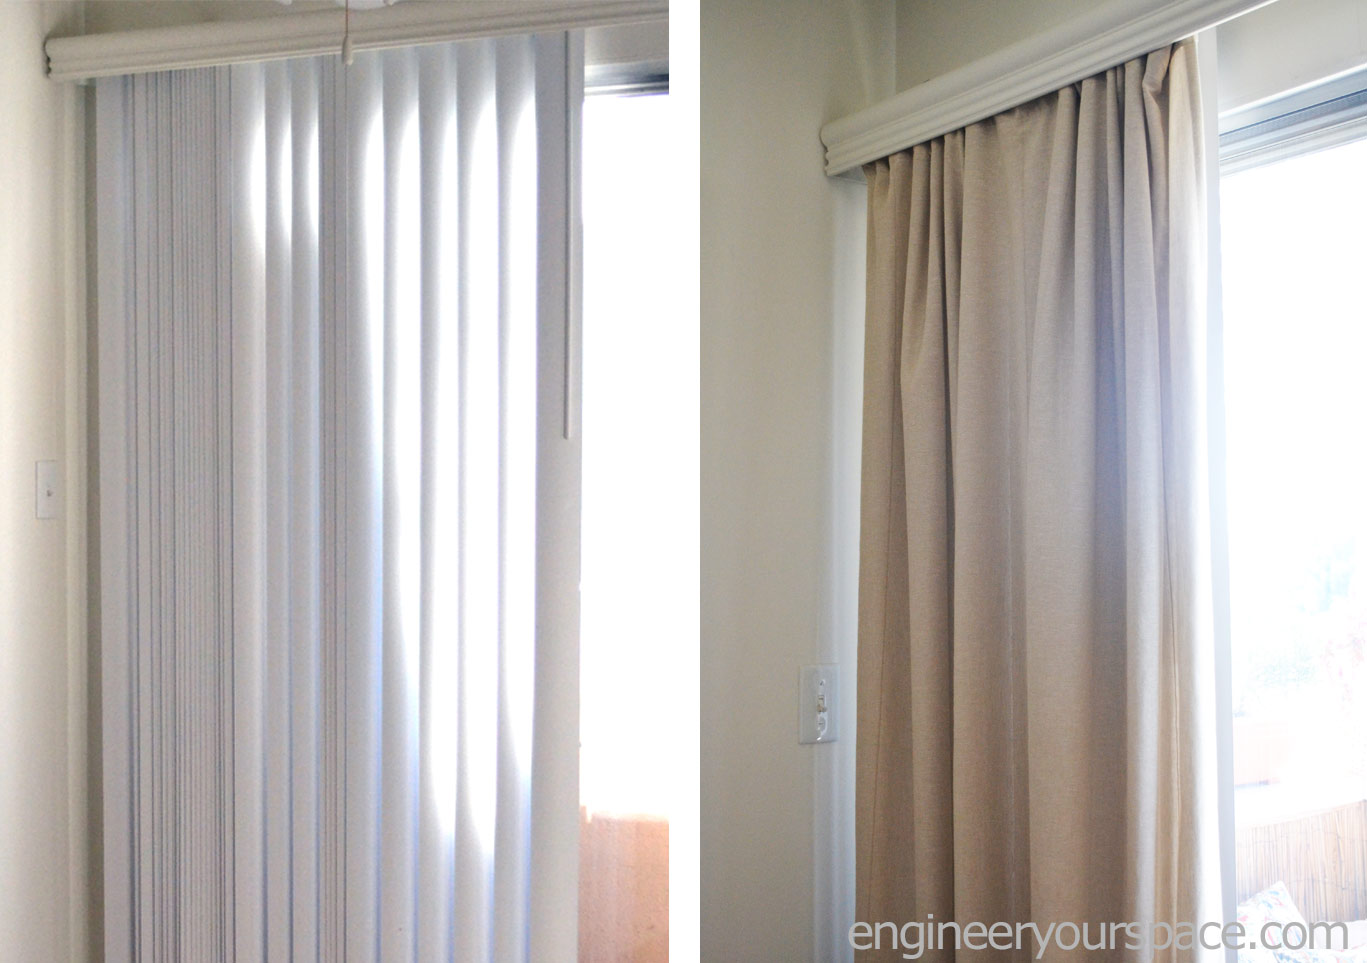 product blinds home blind curtain vertical with detail electric buy wholesale accessories bintronic taiwan motorized curtains